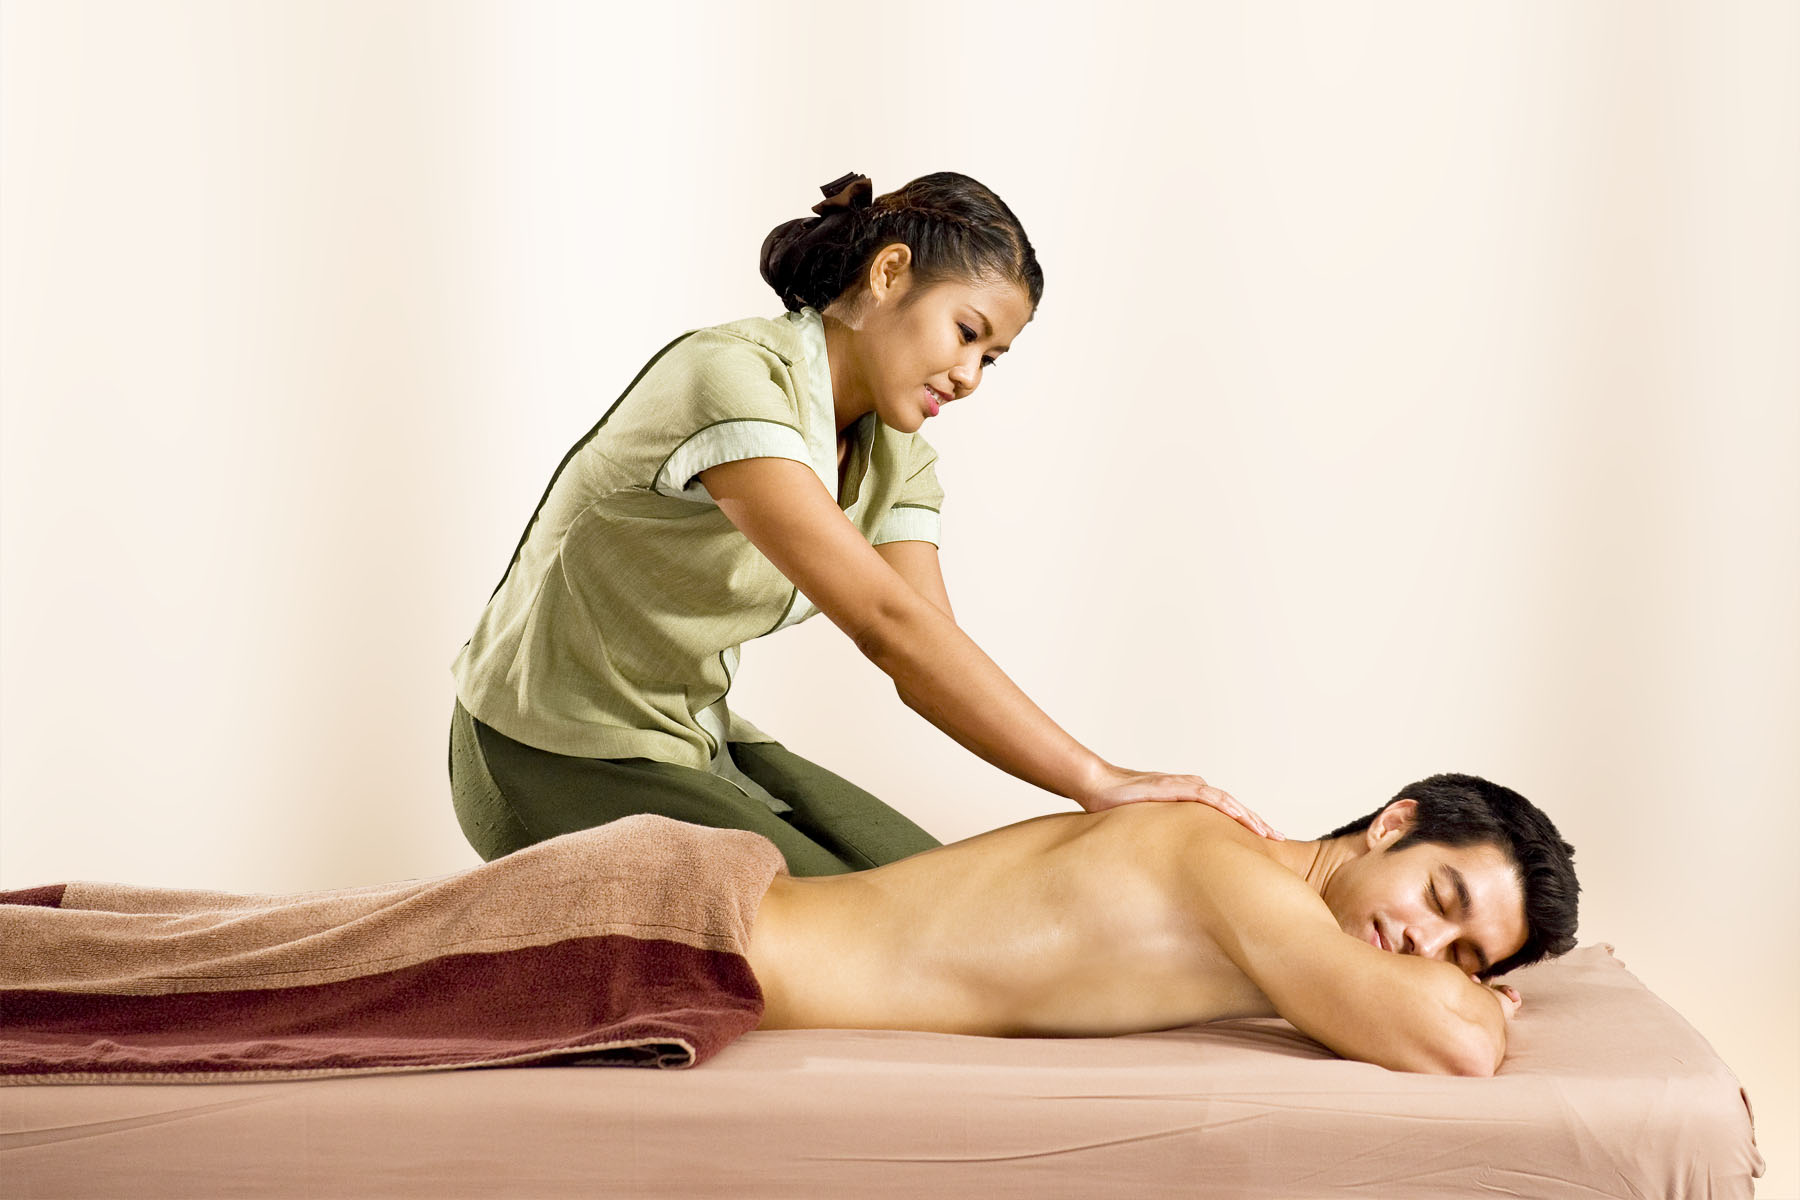 Thai massage wellness skanderborg for mange kokke fordærver maden